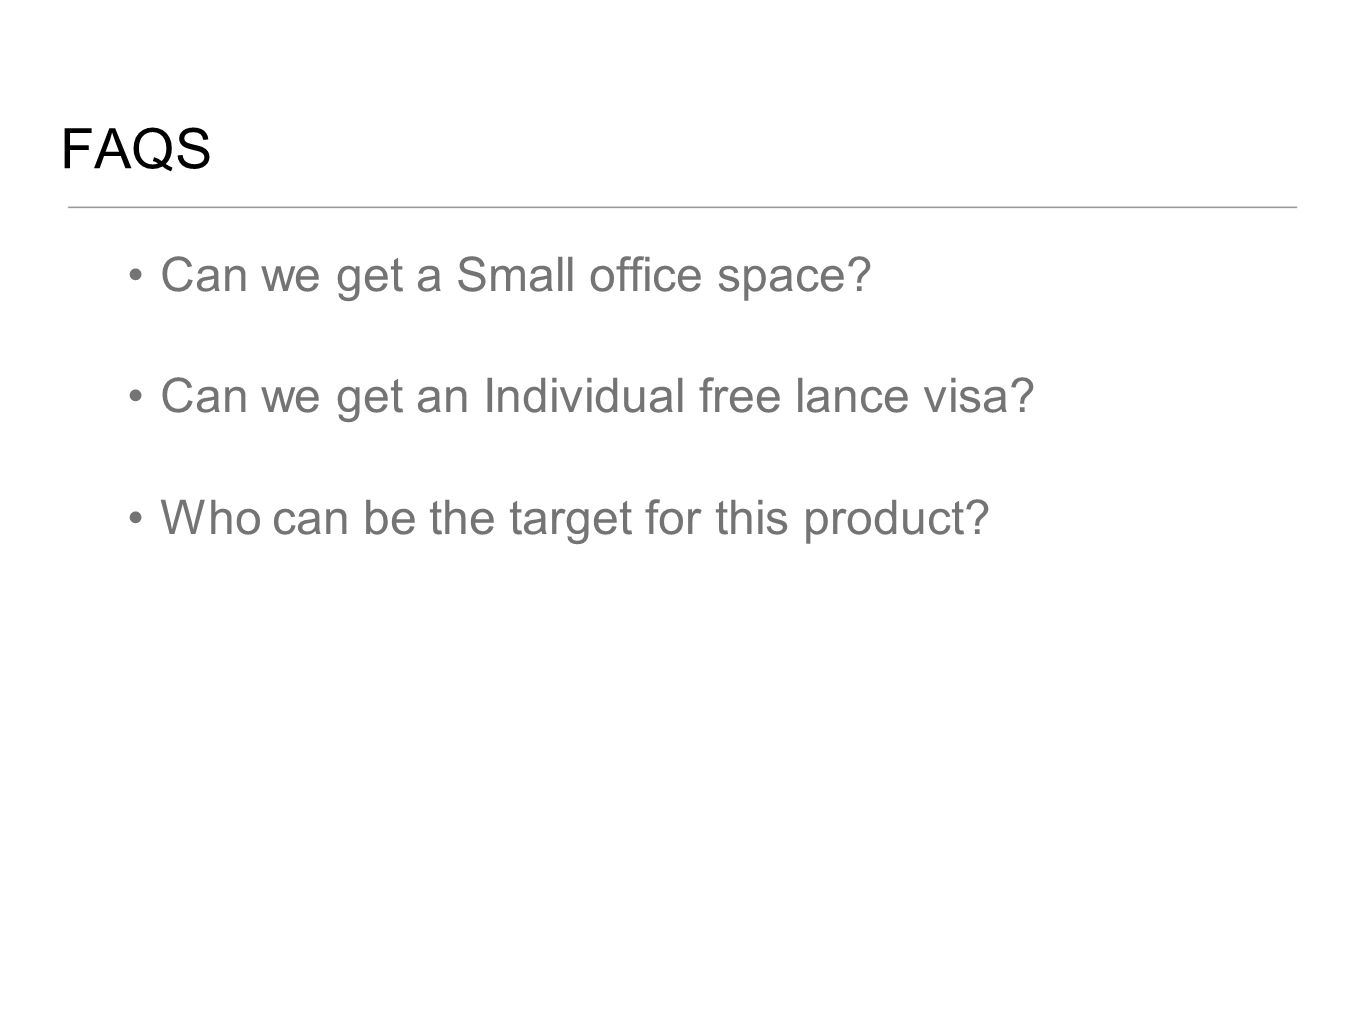 FAQS Can we get a Small office space? Can we get an Individual free lance visa? Who can be the target for this product?